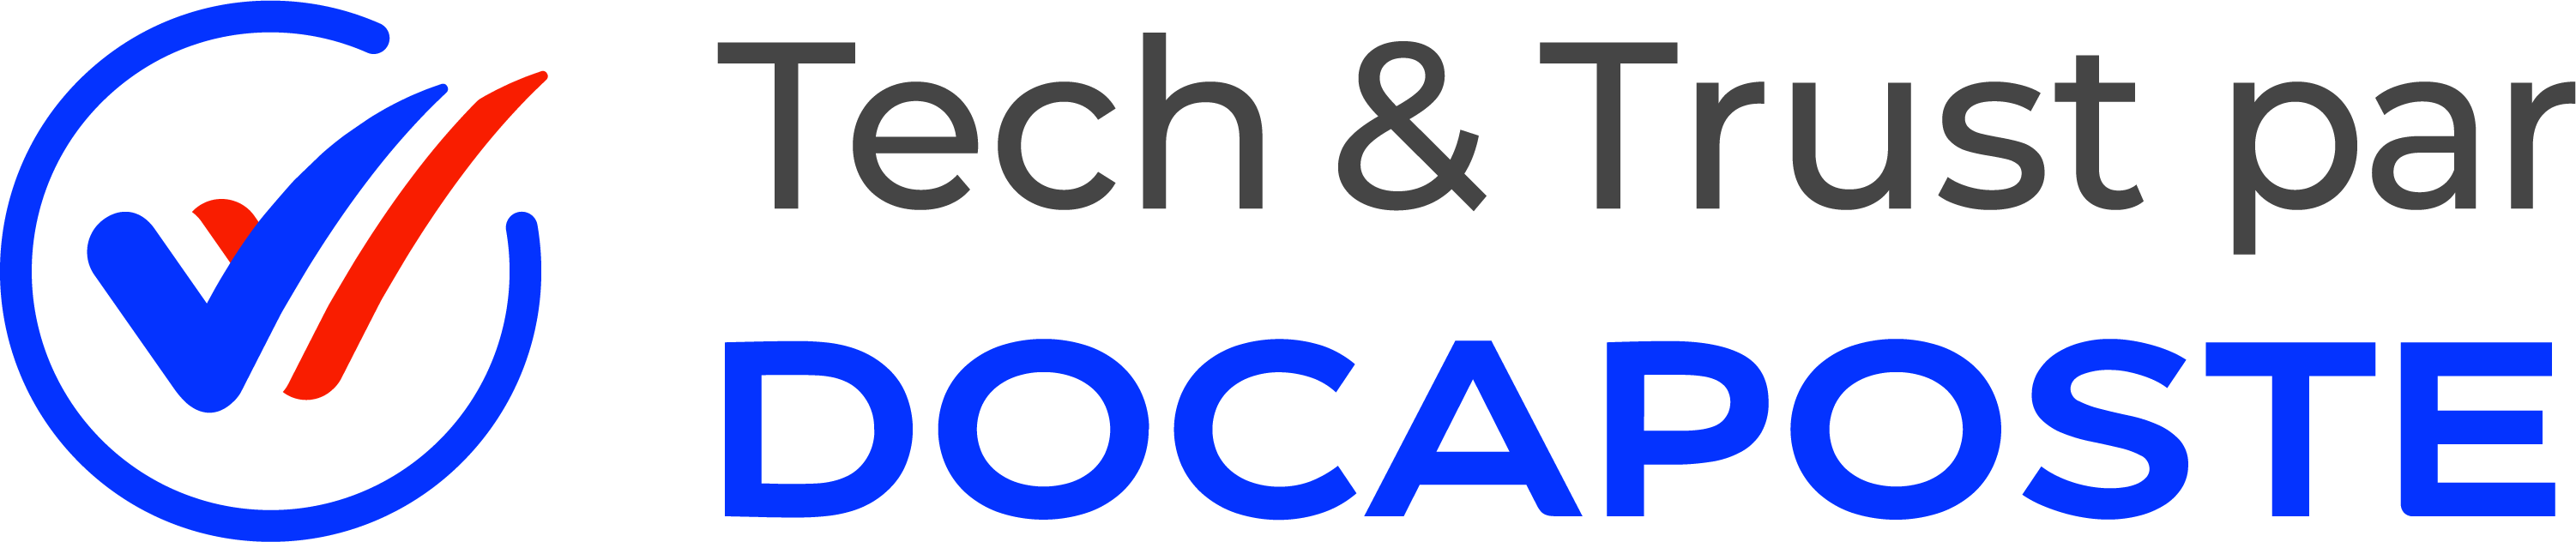 Docaposte Tech and Trust